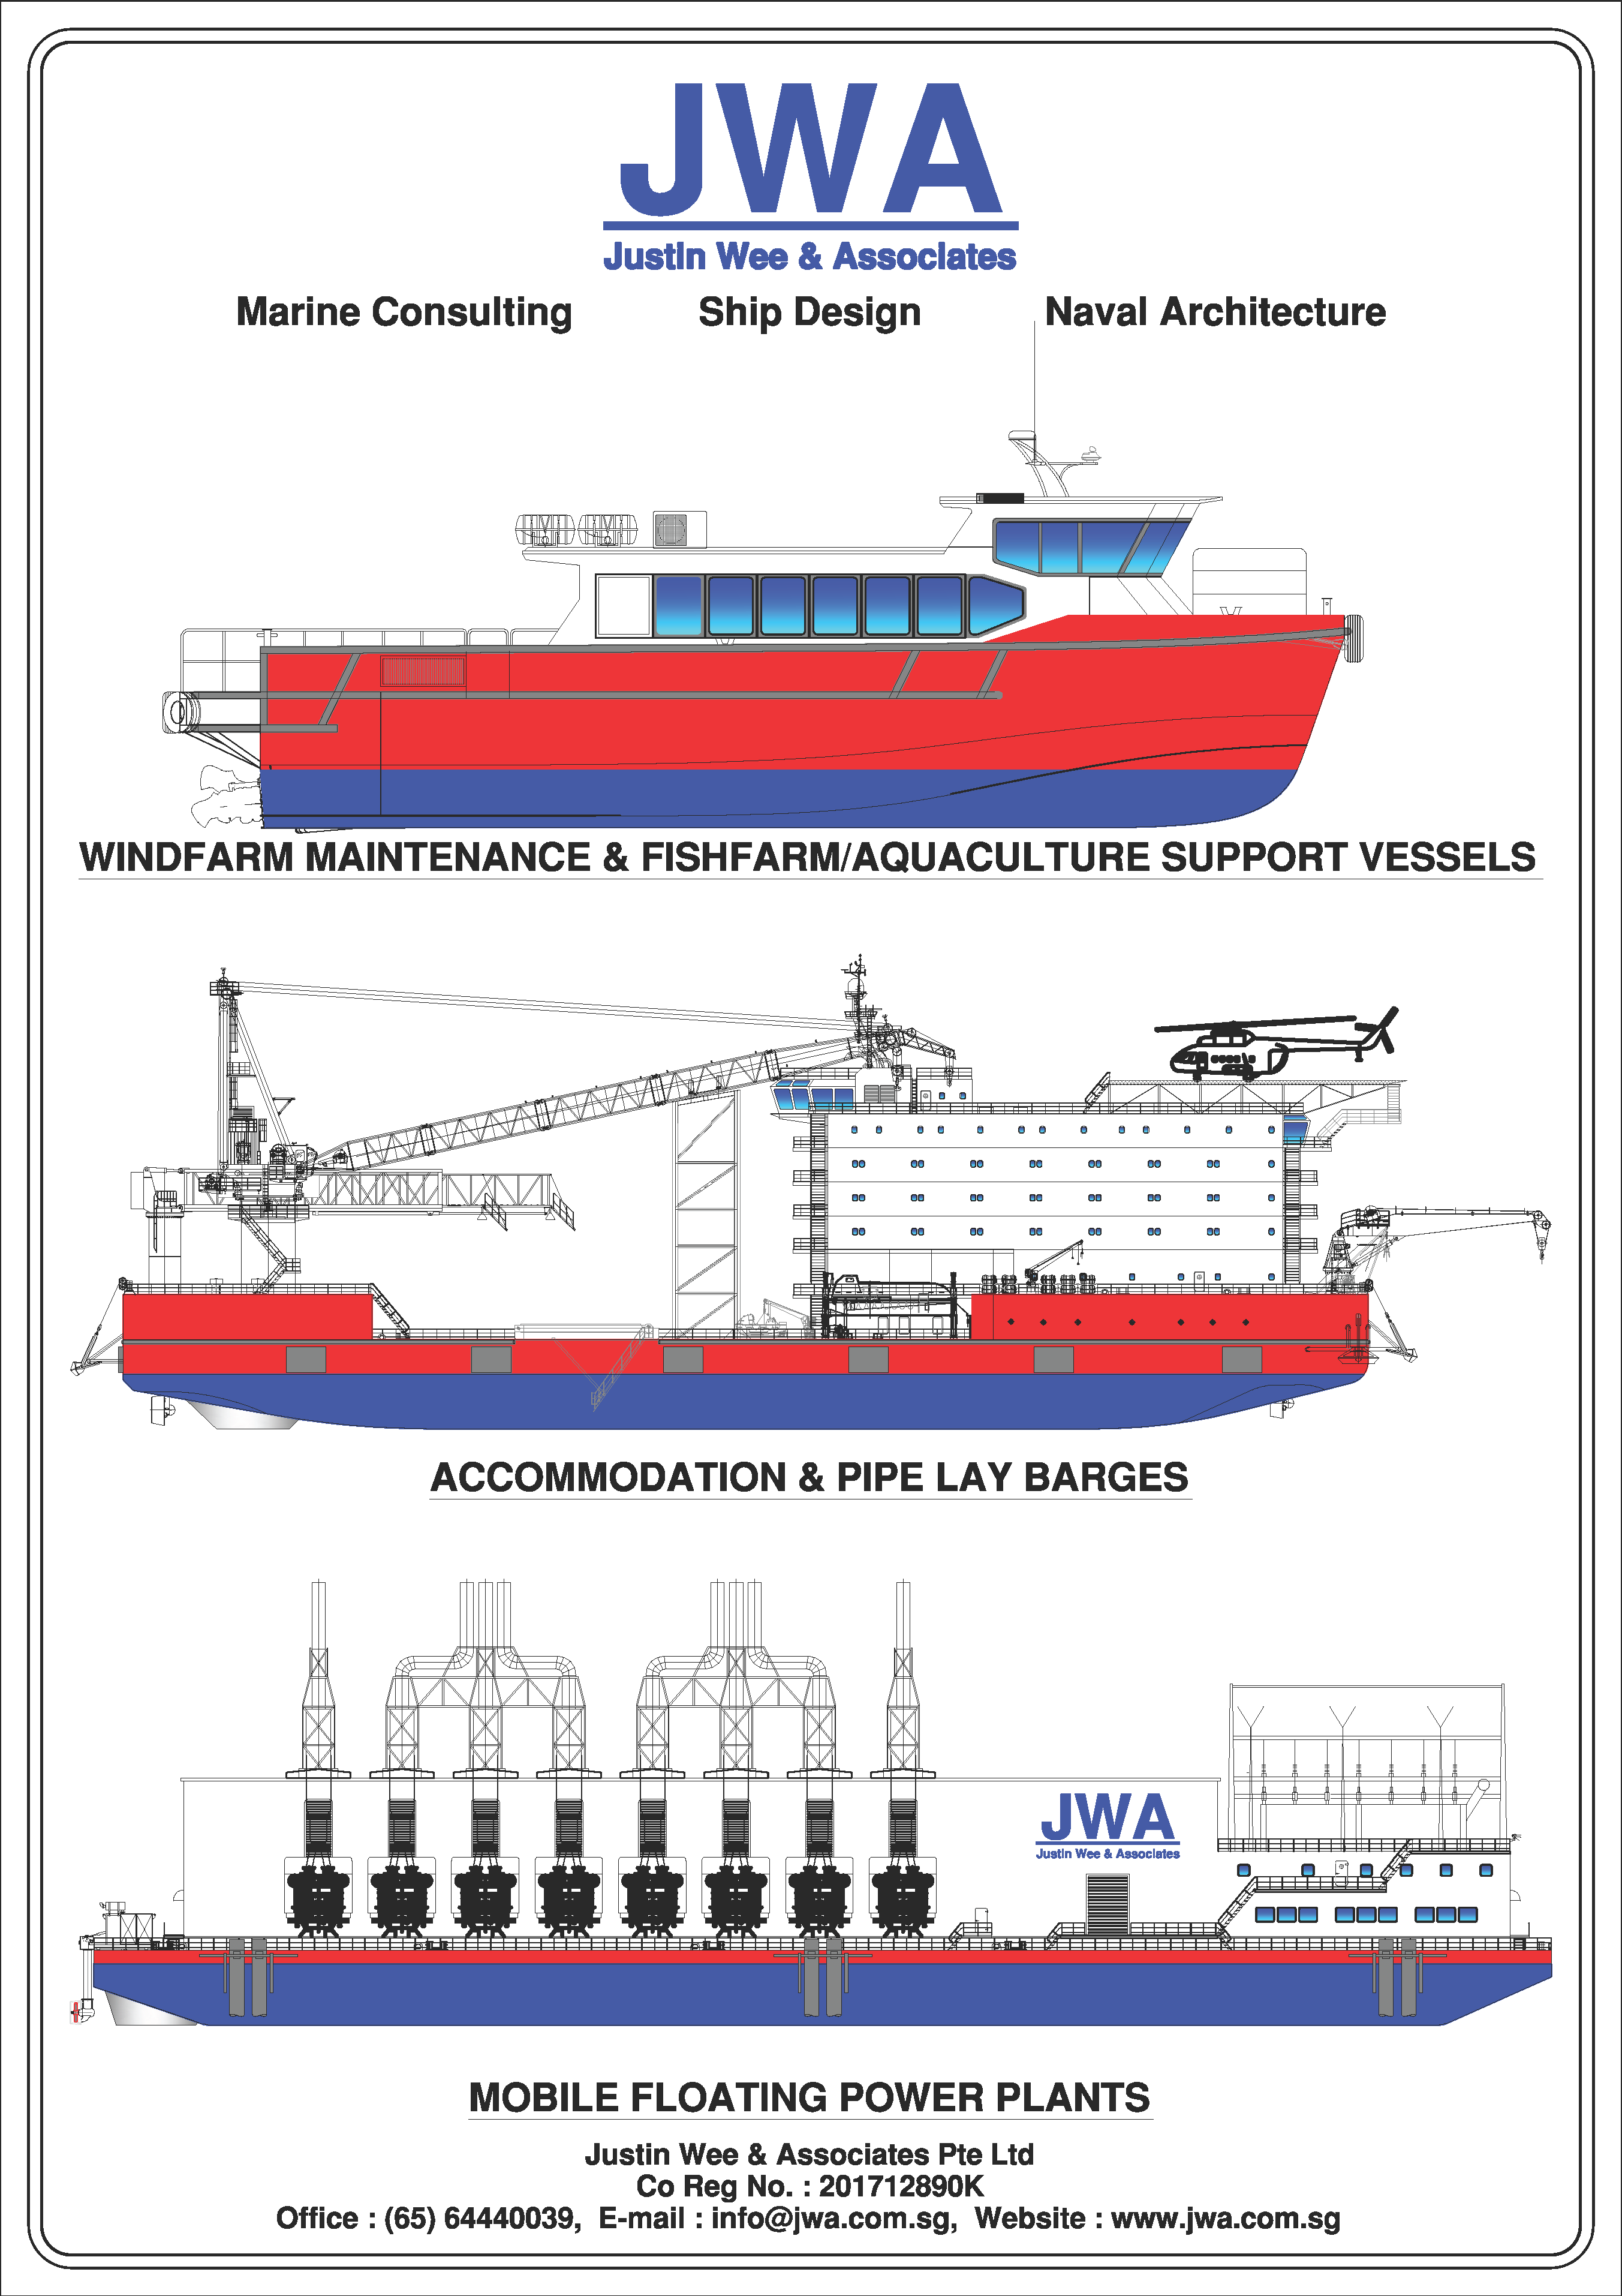 Justin Wee & Associates Pte Ltd – Marine Consulting , Ship